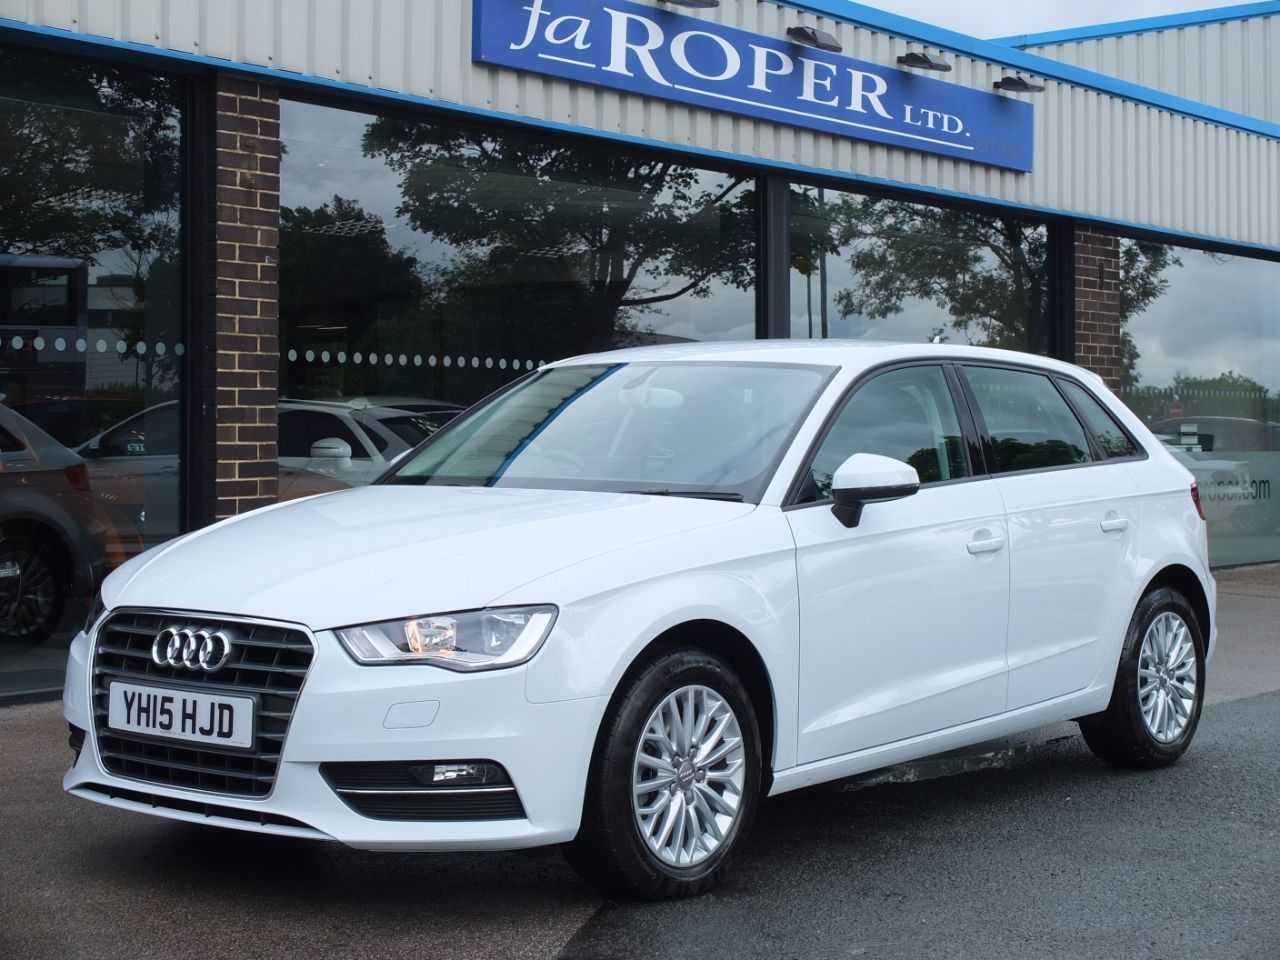 Audi A3 Sportback 1.6 TDI SE Technik 5 door 110ps Hatchback Diesel Glacier White MetallicAudi A3 Sportback 1.6 TDI SE Technik 5 door 110ps Hatchback Diesel Glacier White Metallic at fa Roper Ltd Bradford